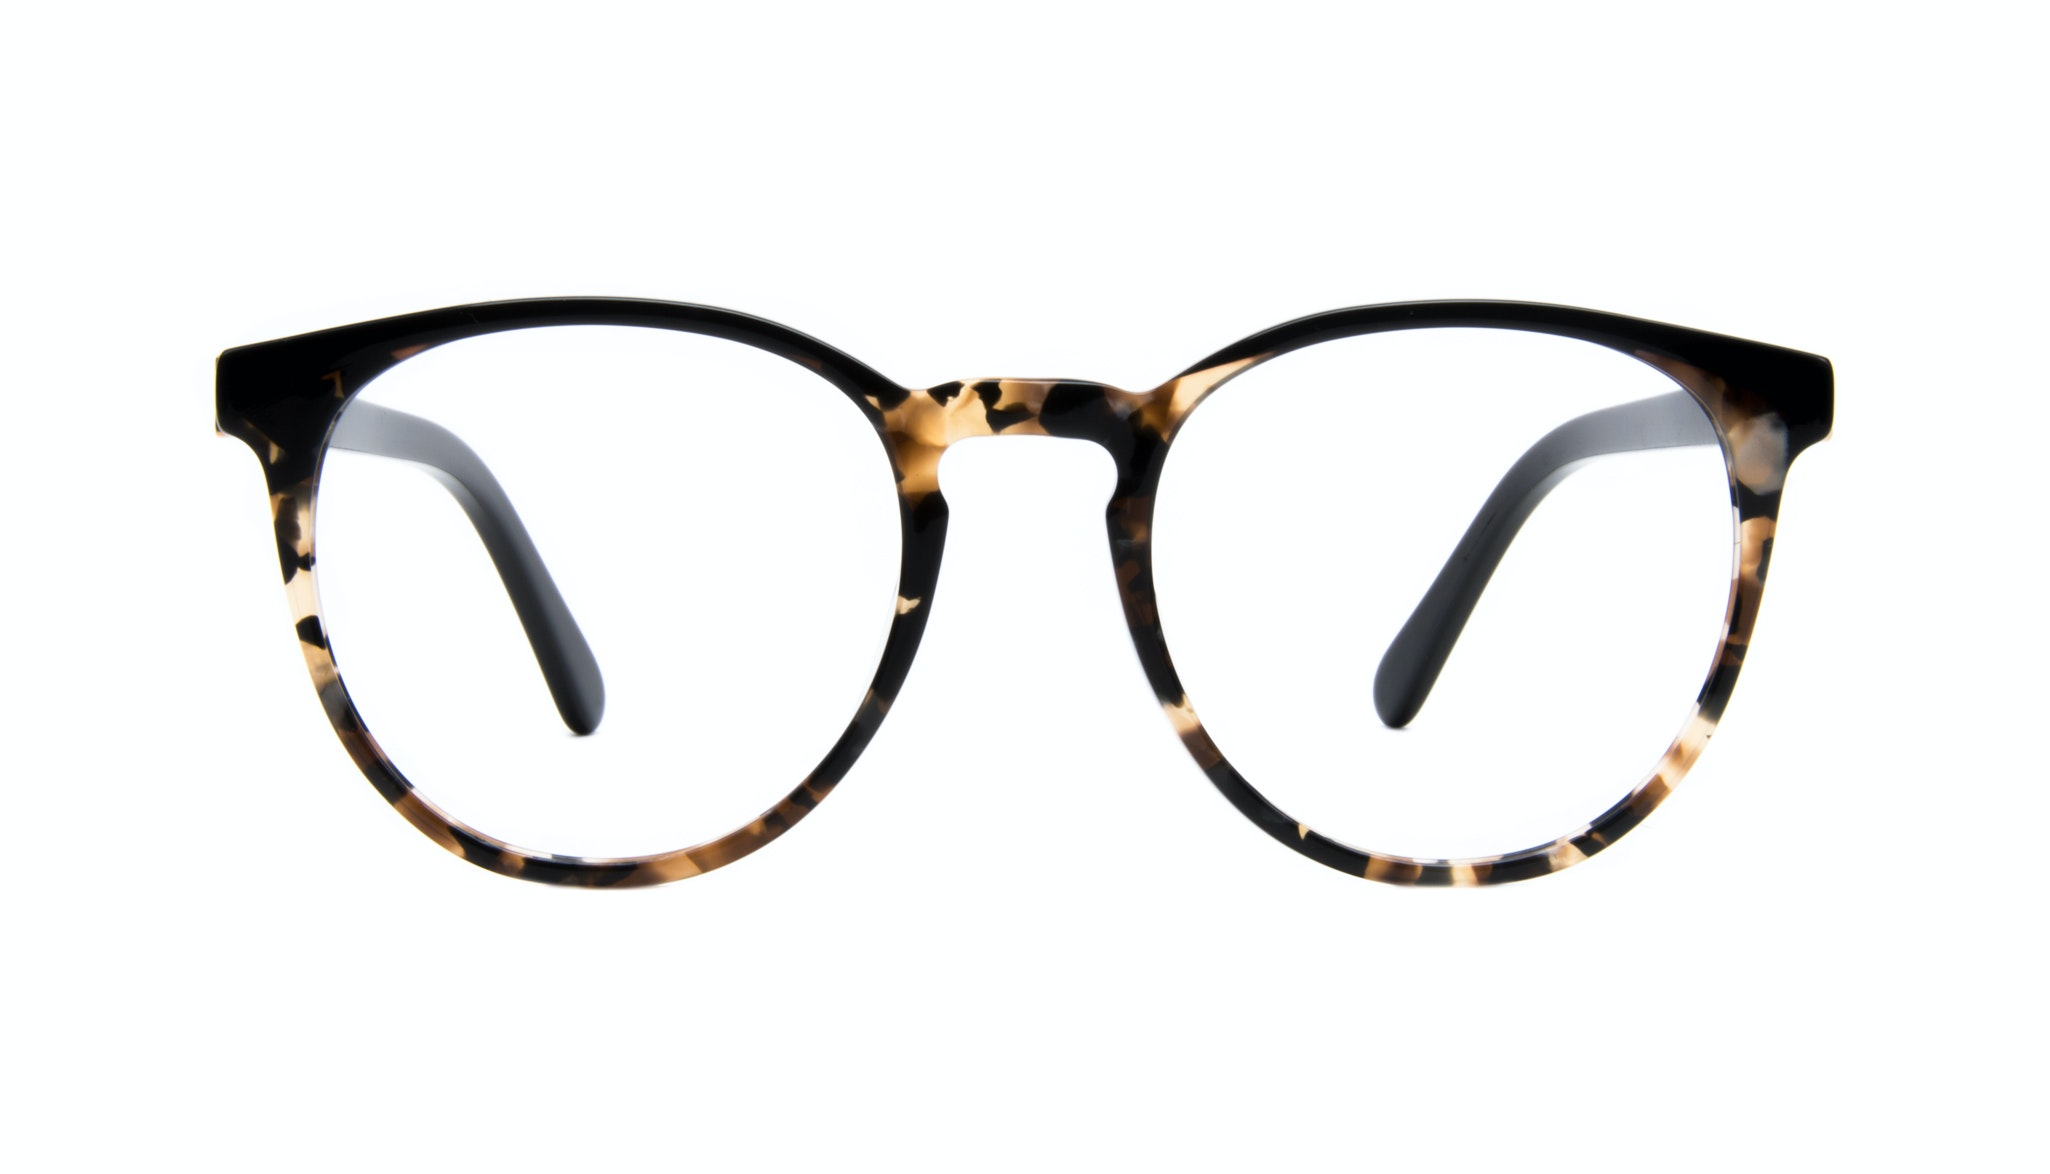 Affordable Fashion Glasses Round Eyeglasses Women Brilliant Dark Tortoise